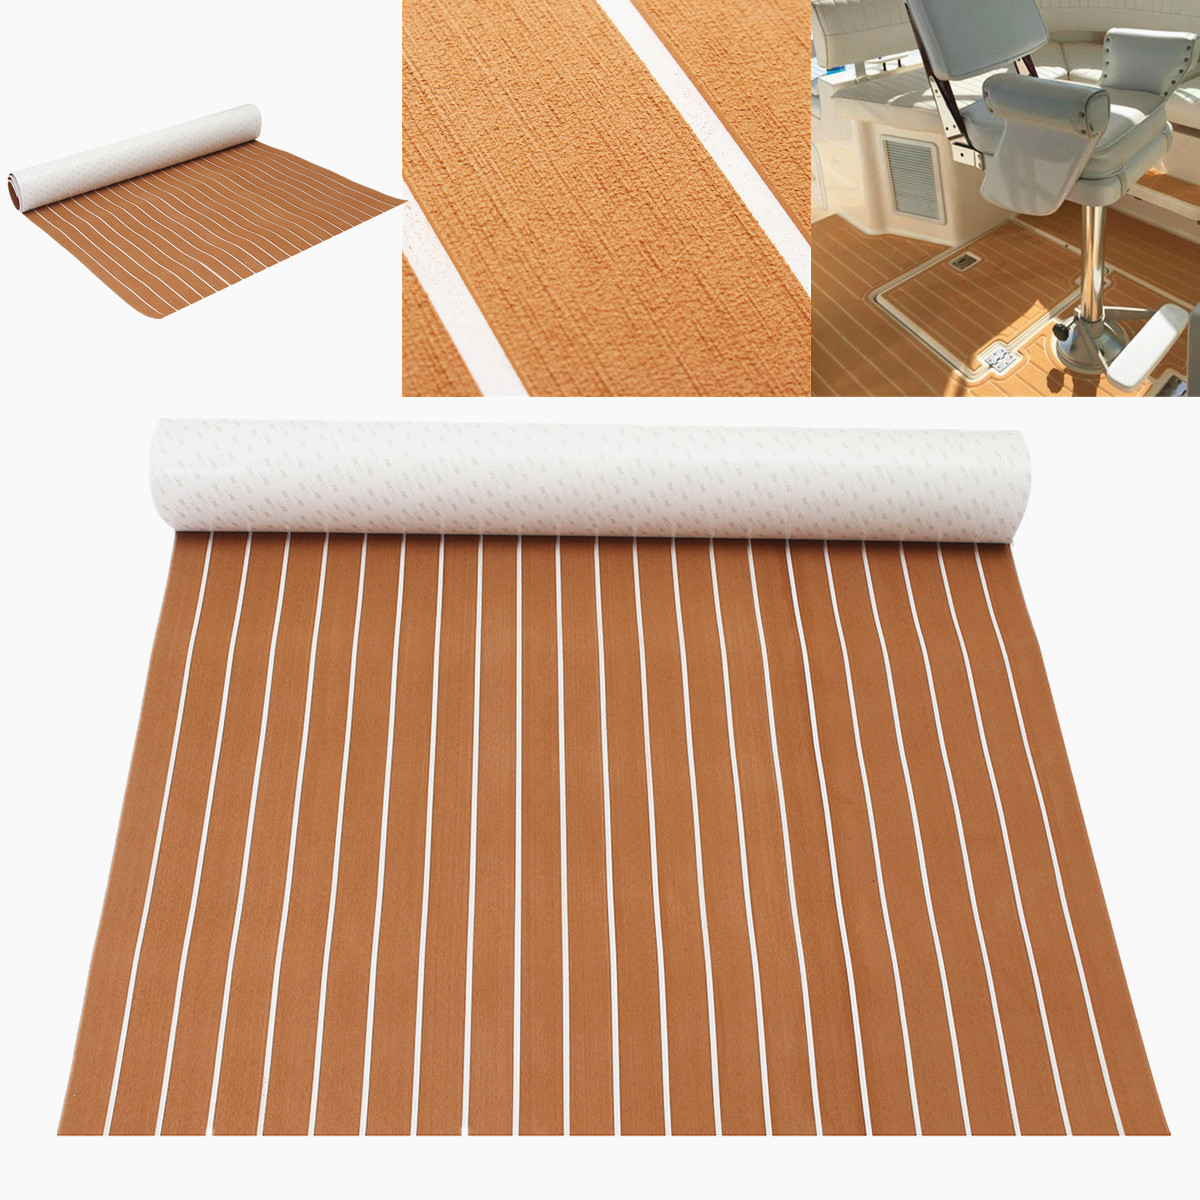 1200x2400x5mm Self Adhesive Teak Flooring EVA Foam Teak Sheet Teak Boat Decking Marine Car Yacht Floor Mat Synthetic Teak Pad